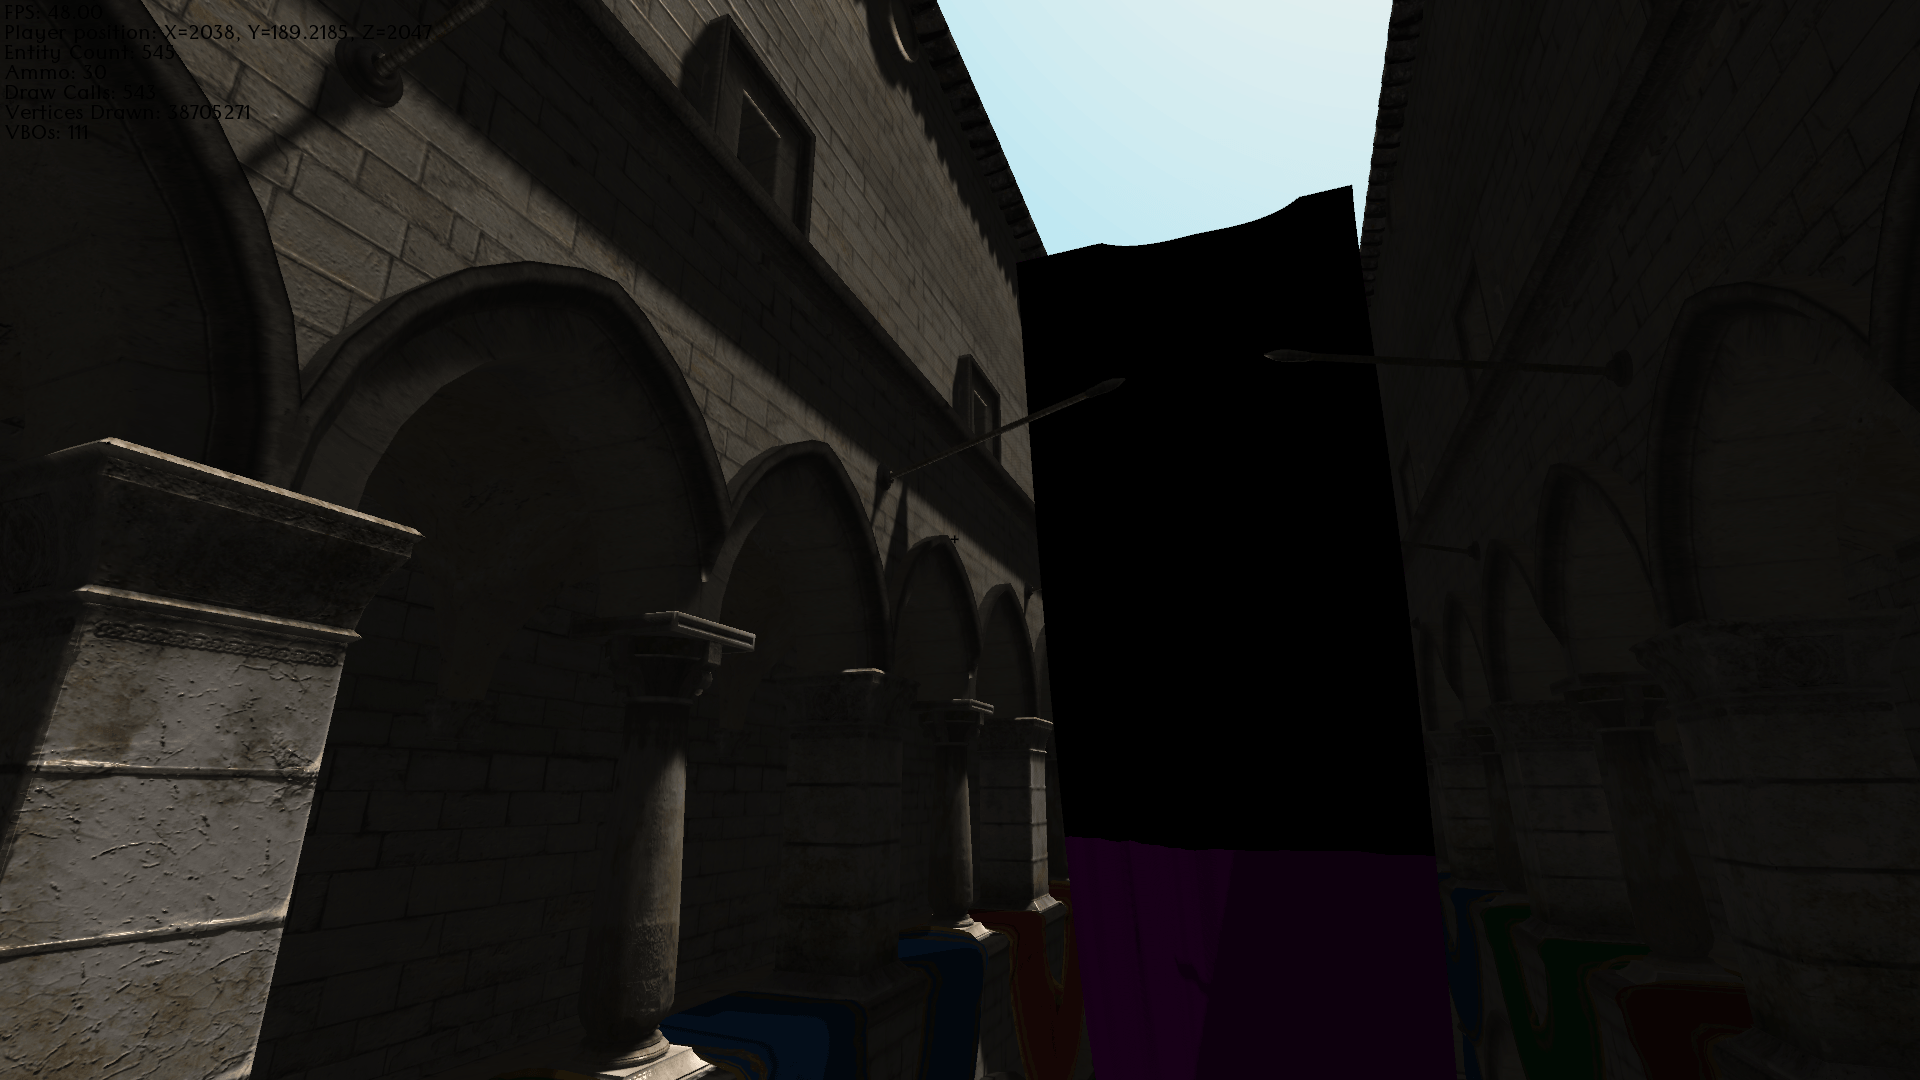 Crytek Sponza model with 4096x4096 4-split CSMs, 3x3 Gaussian blurring with PCF.